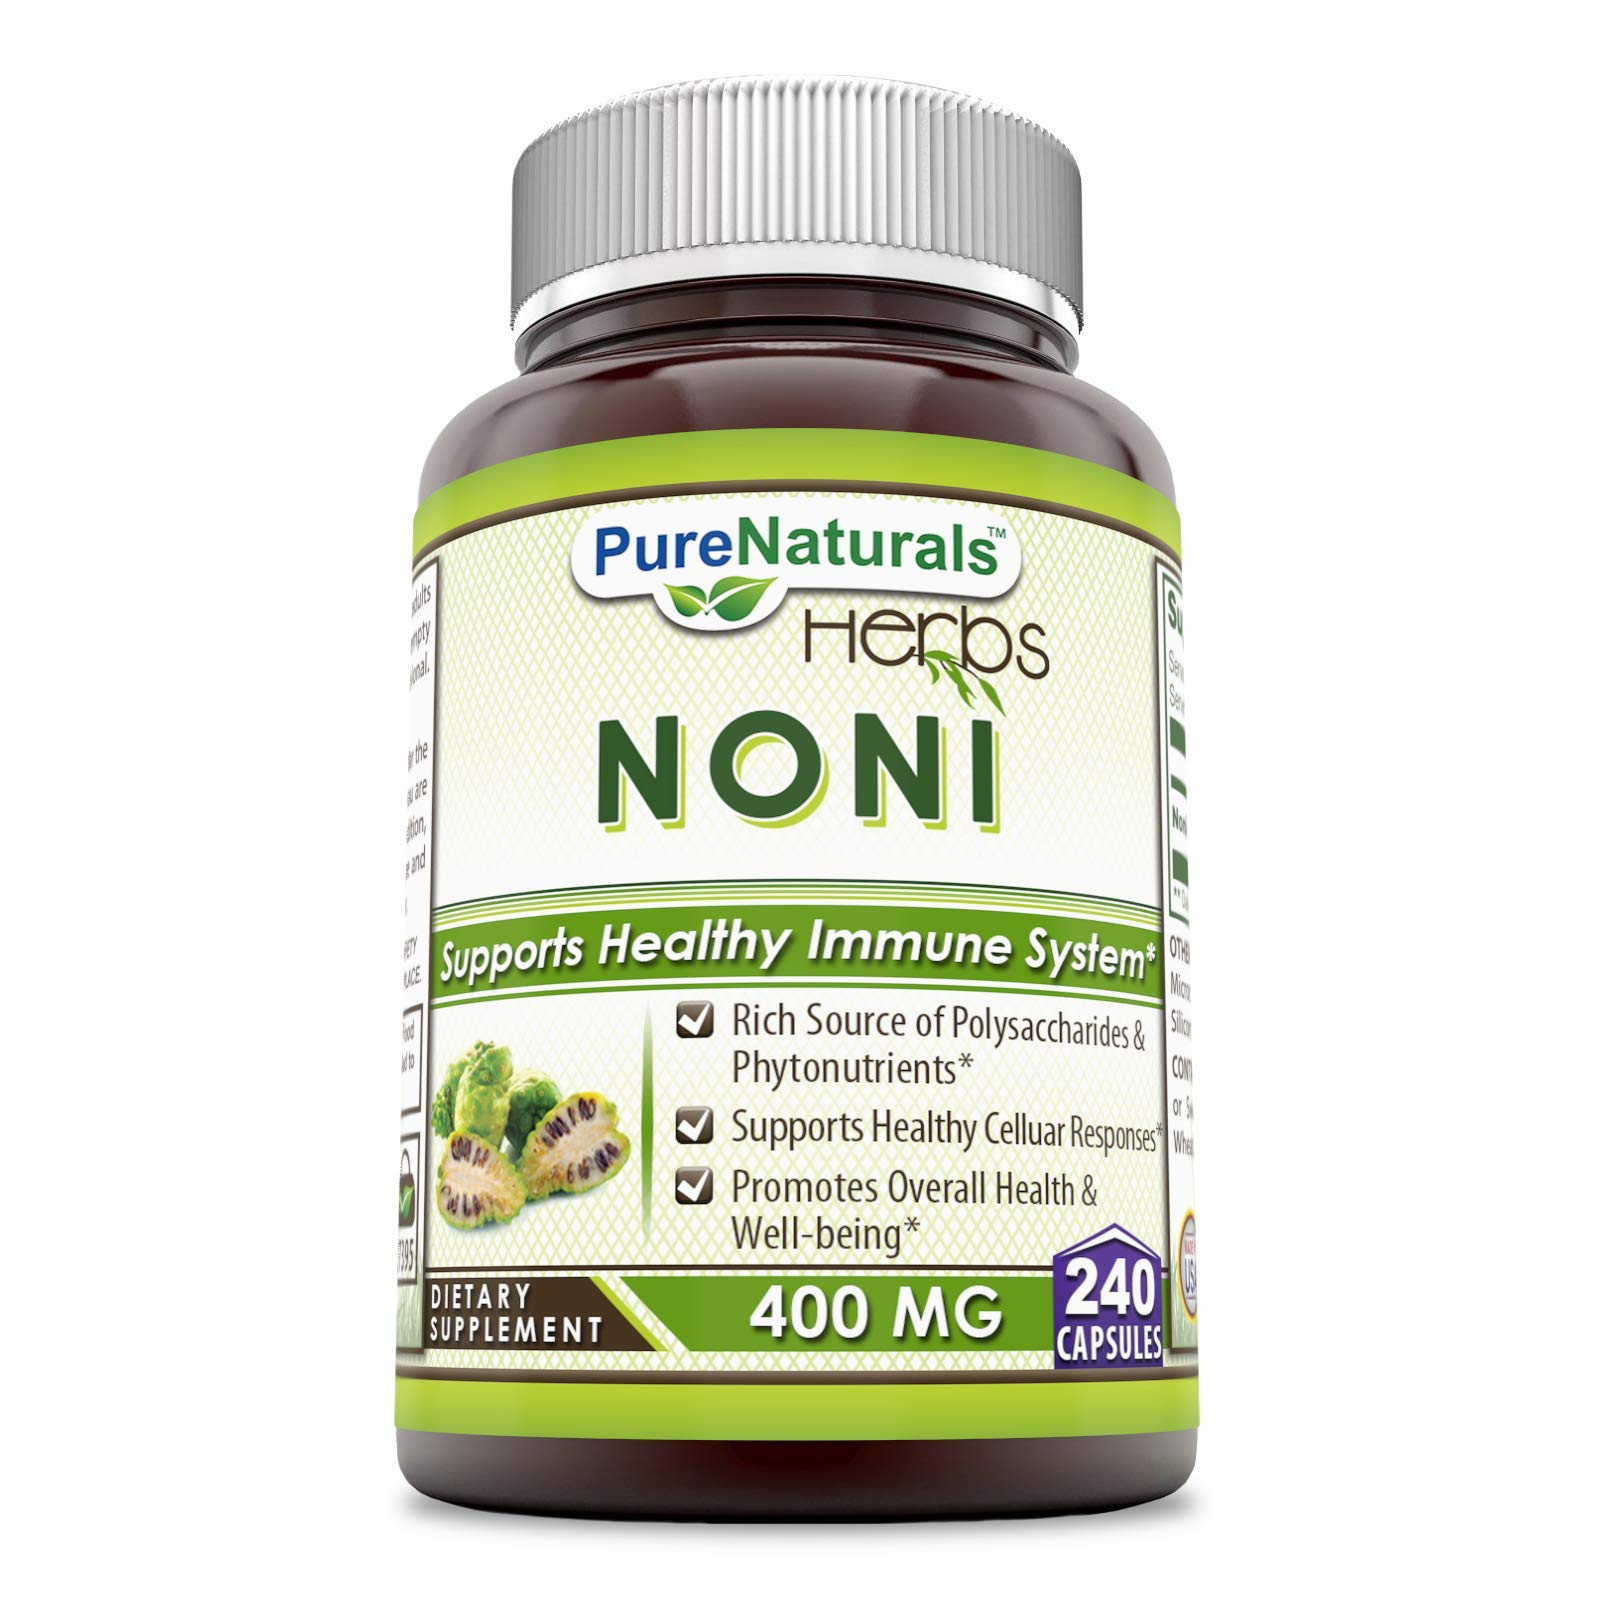 Pure Naturals Noni 400 mg 240 Capsules (Non-GMO) Rich Source of Polysacharides & Phytonutrients, Supports Healthy Celluar Responses, Promotes Overall Health & Well-Being